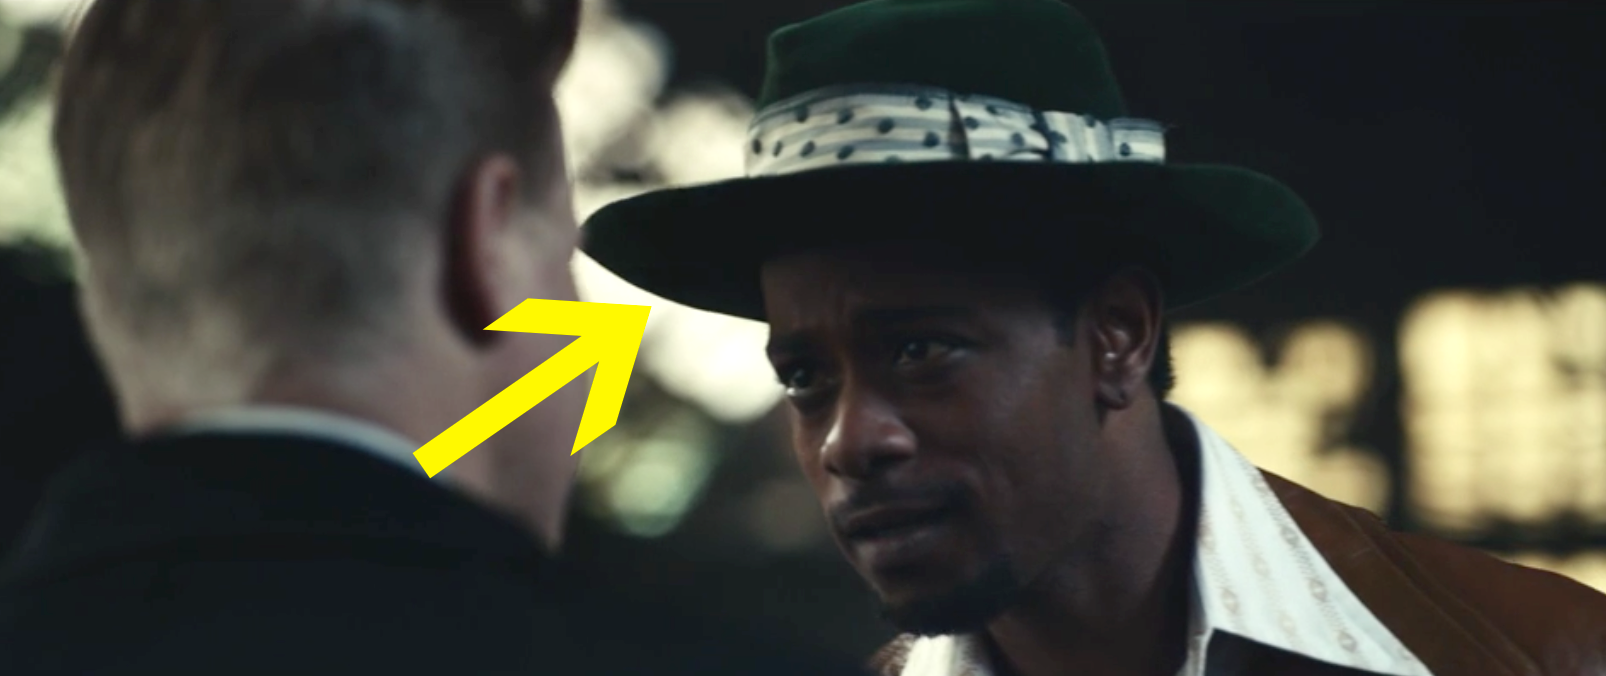 William O'Neal wearing a green fedora